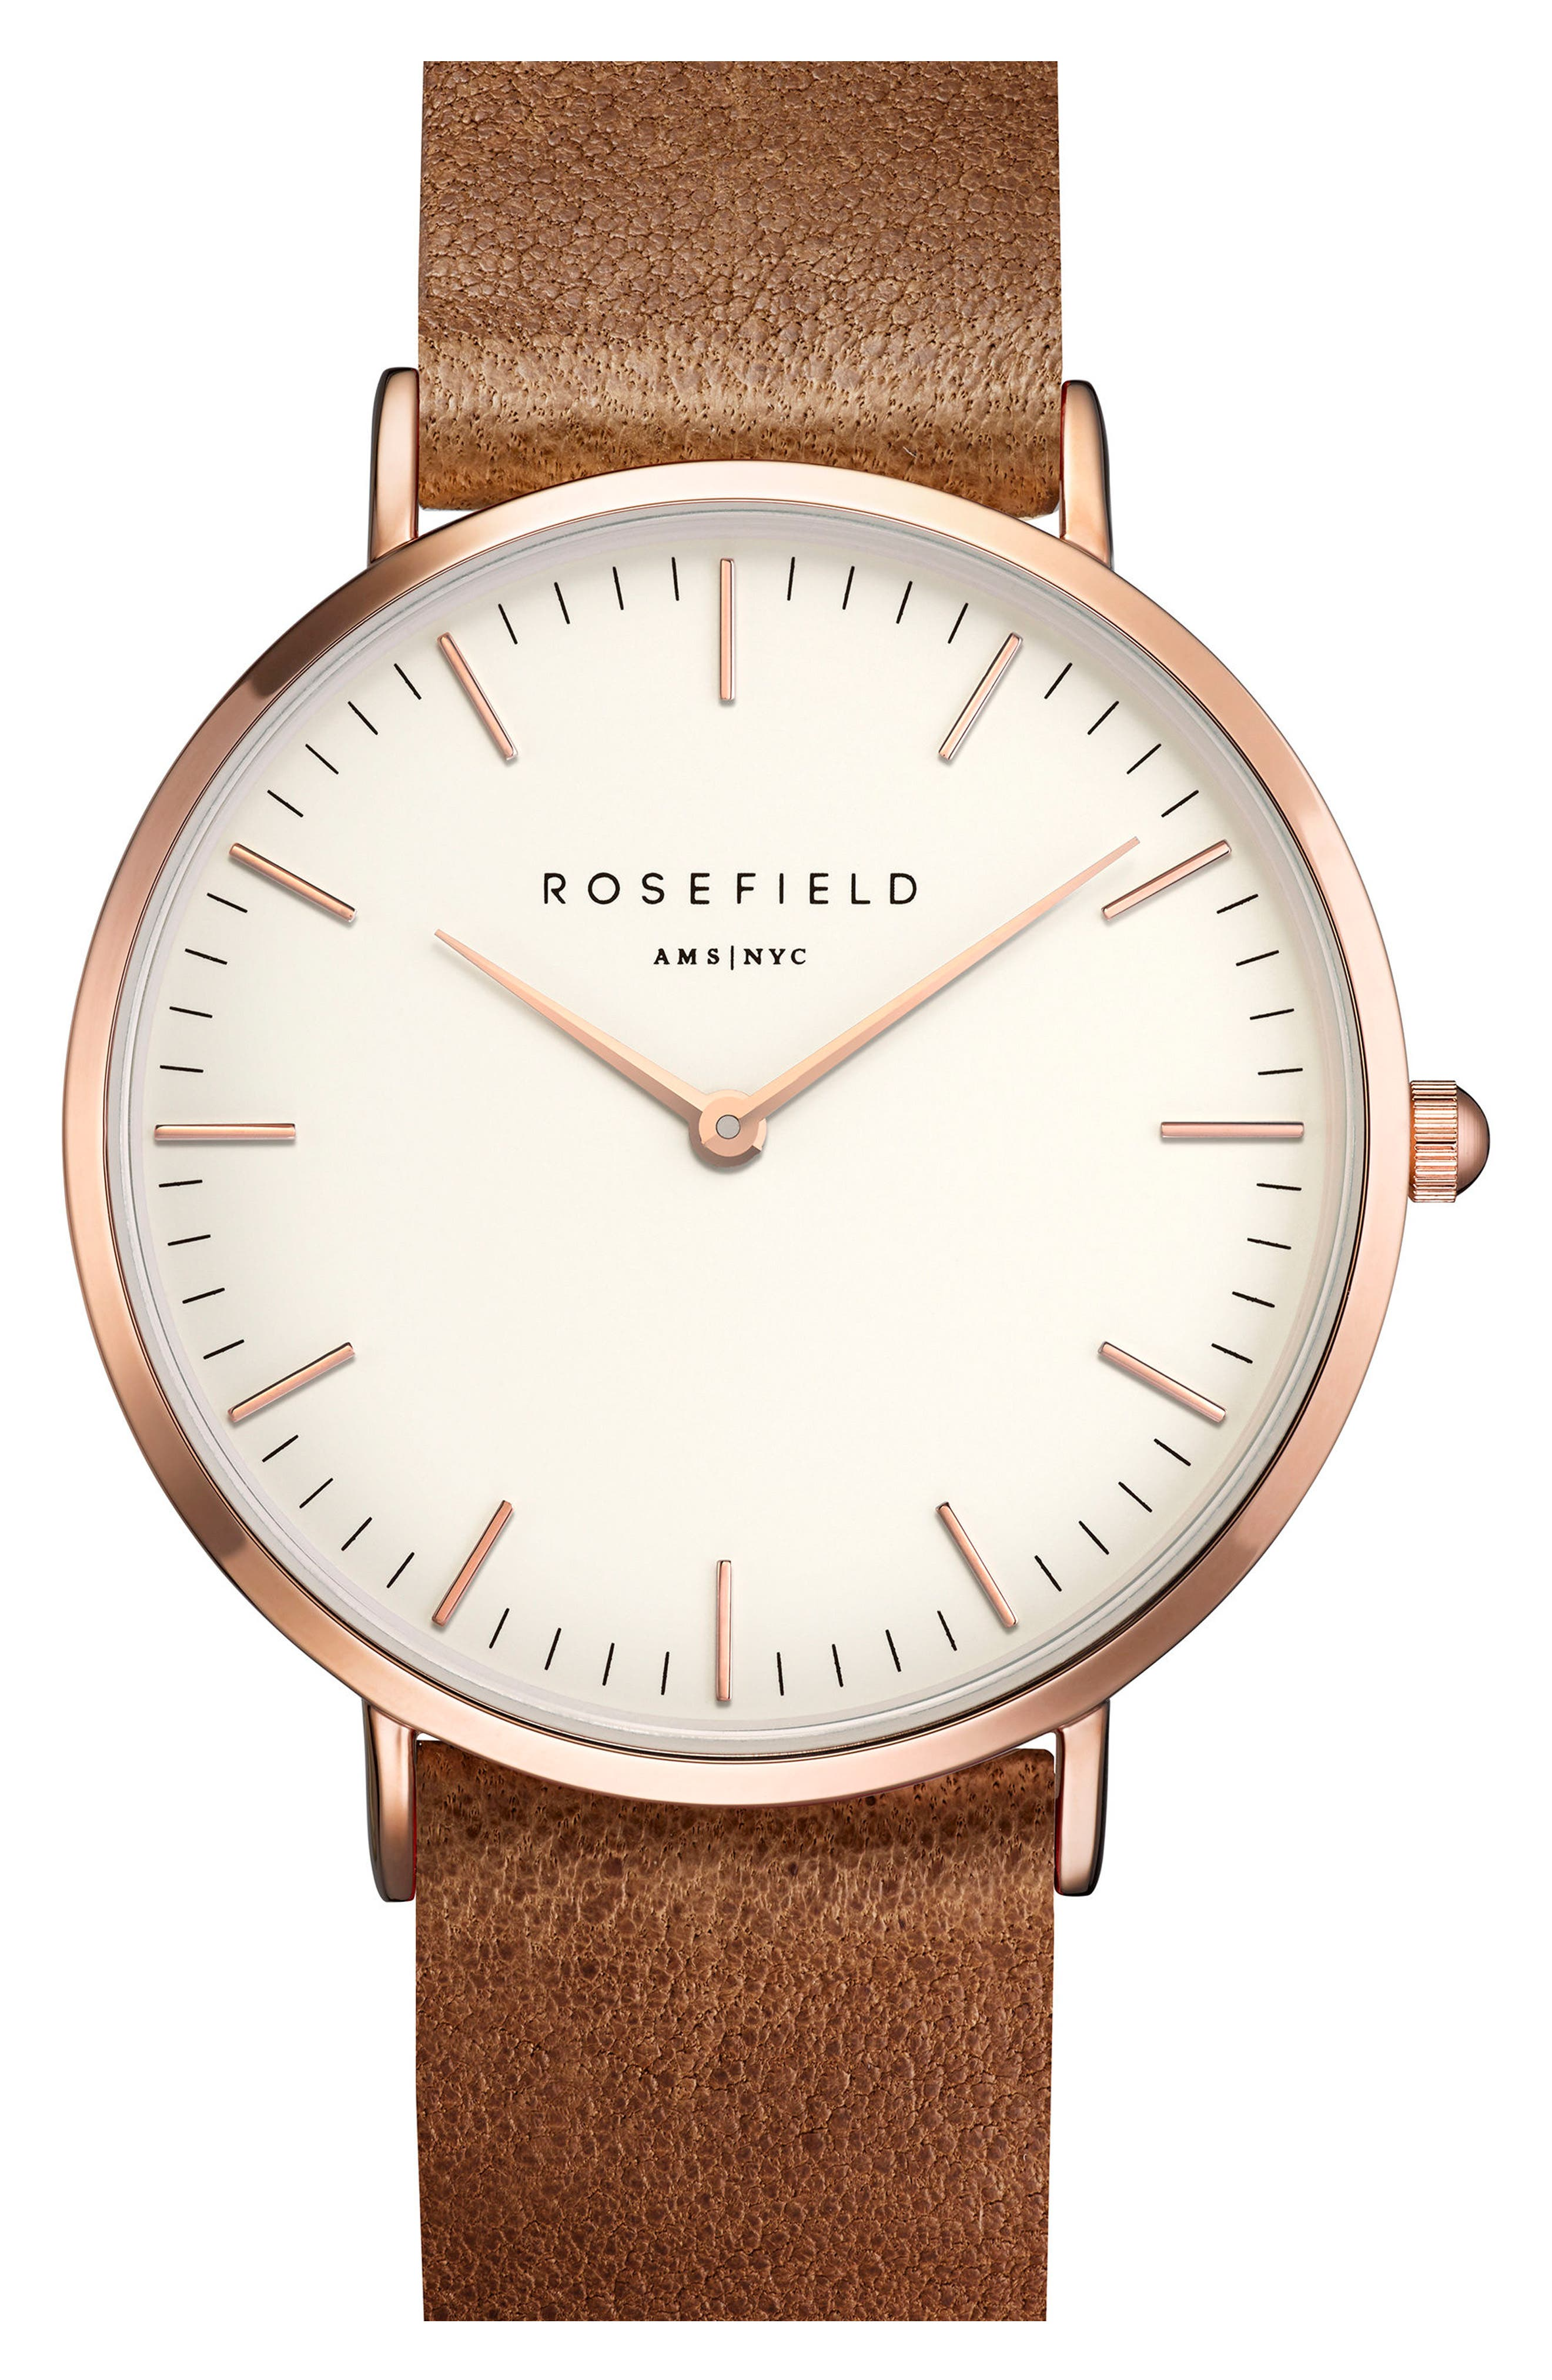 ROSEFIELD, Tribeca Leather Strap Watch, 33mm, Main thumbnail 1, color, BROWN/ WHITE/ ROSE GOLD